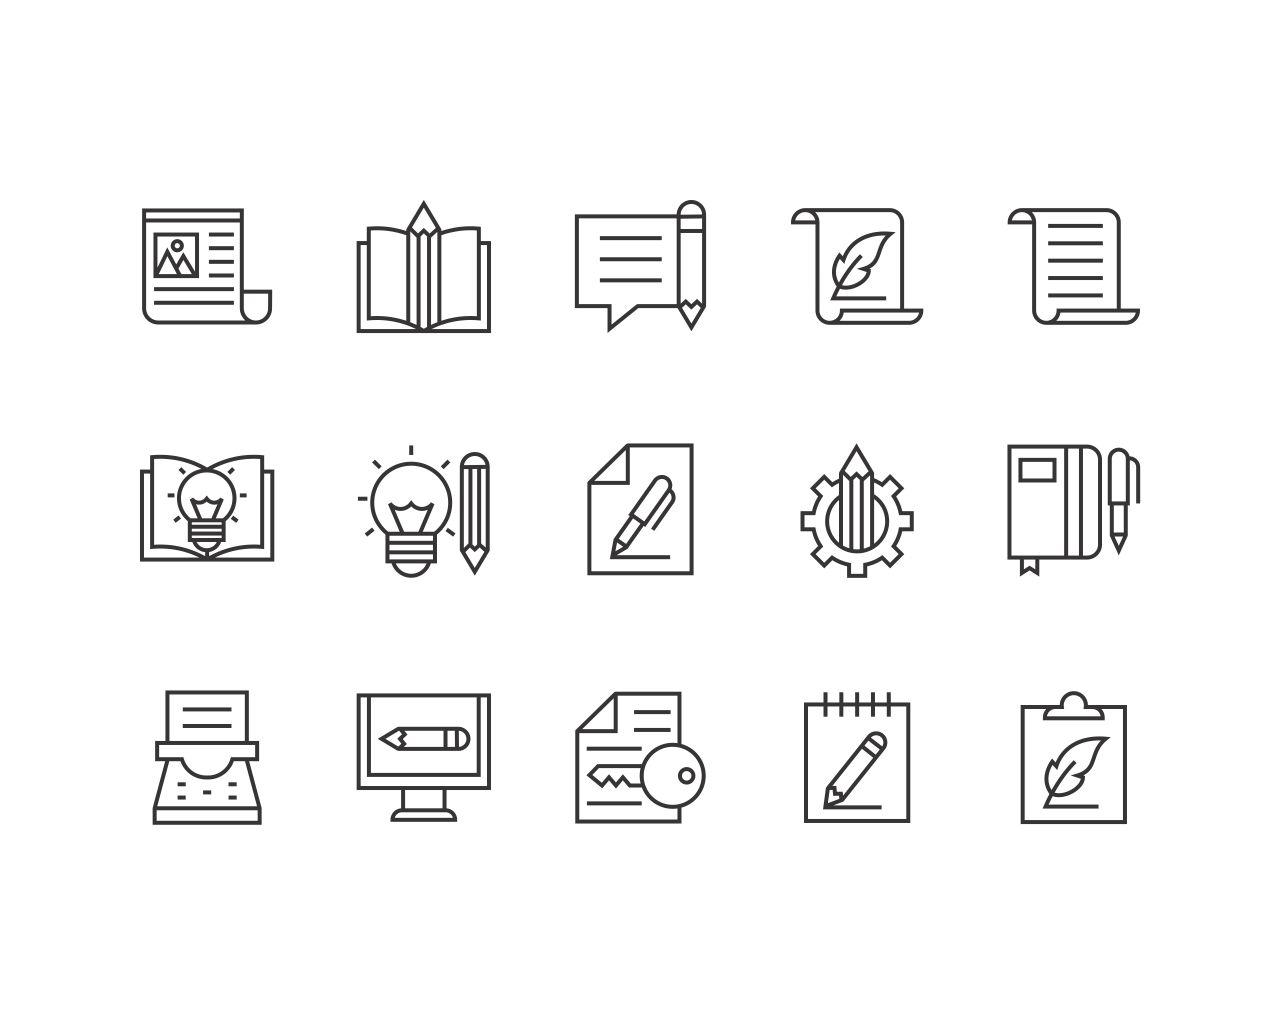 High Quality Icon Set Design by vector_factory - 109893